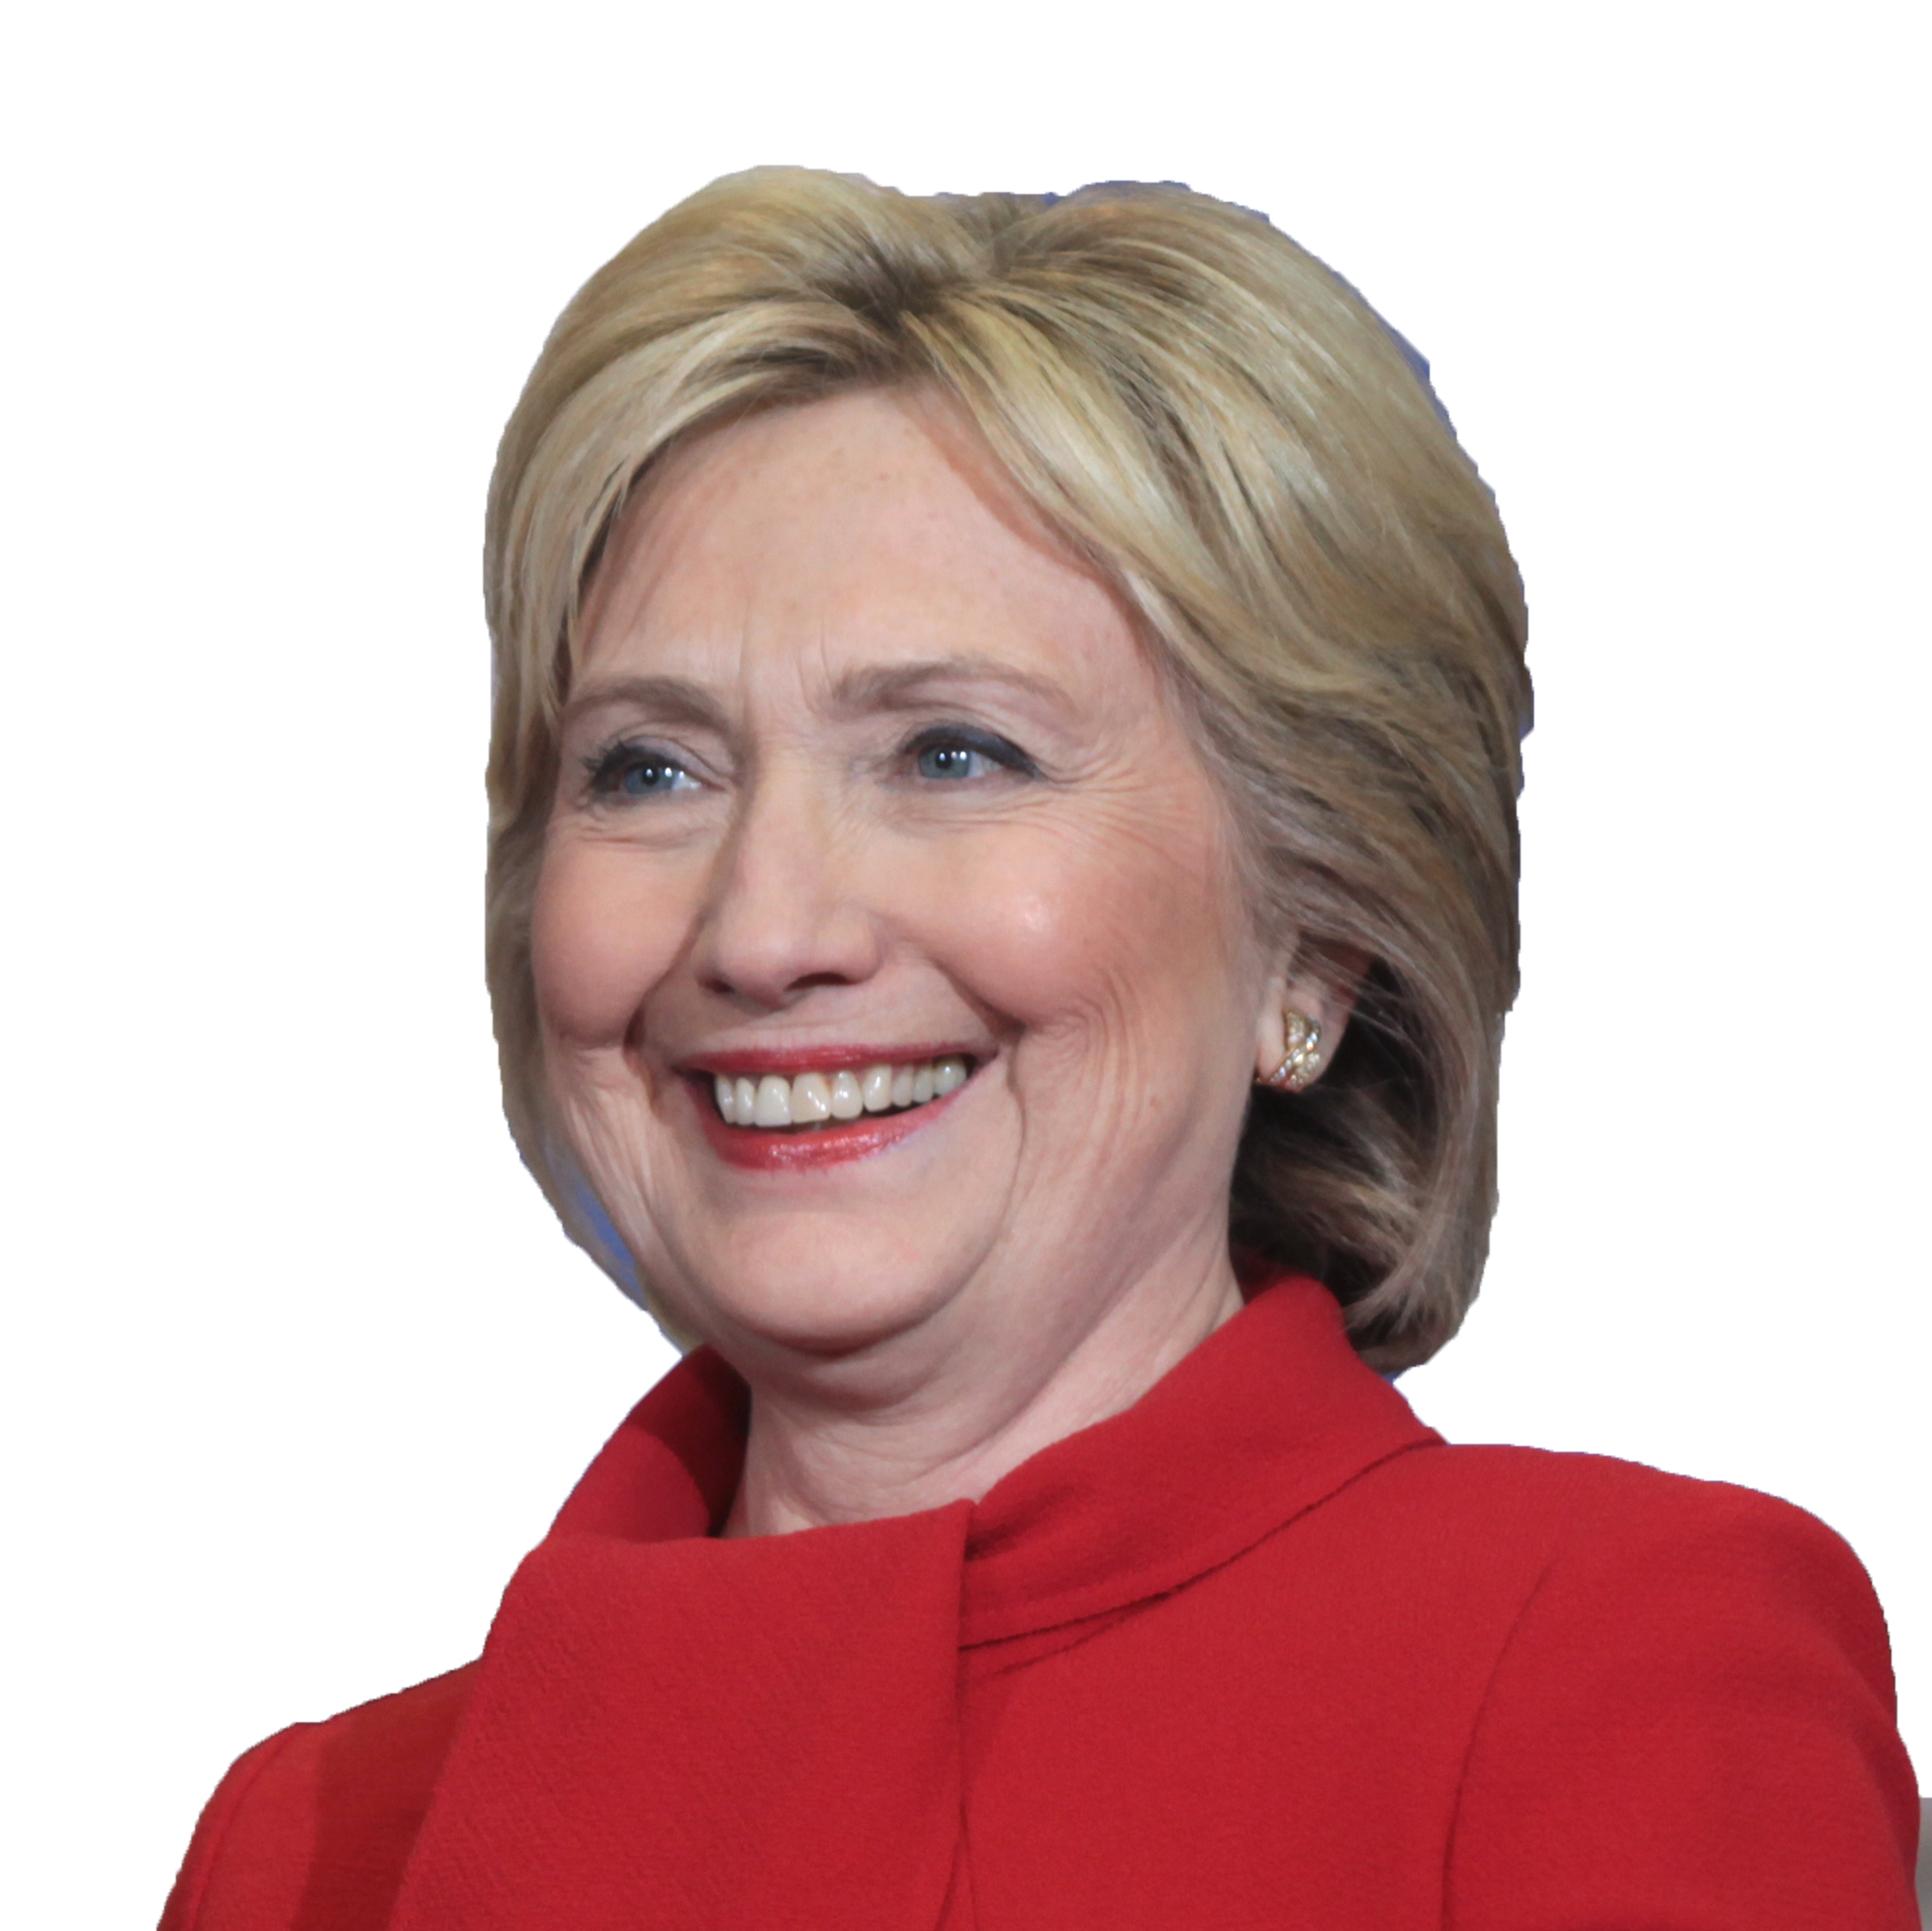 Hillary png . Politician clipart clinton